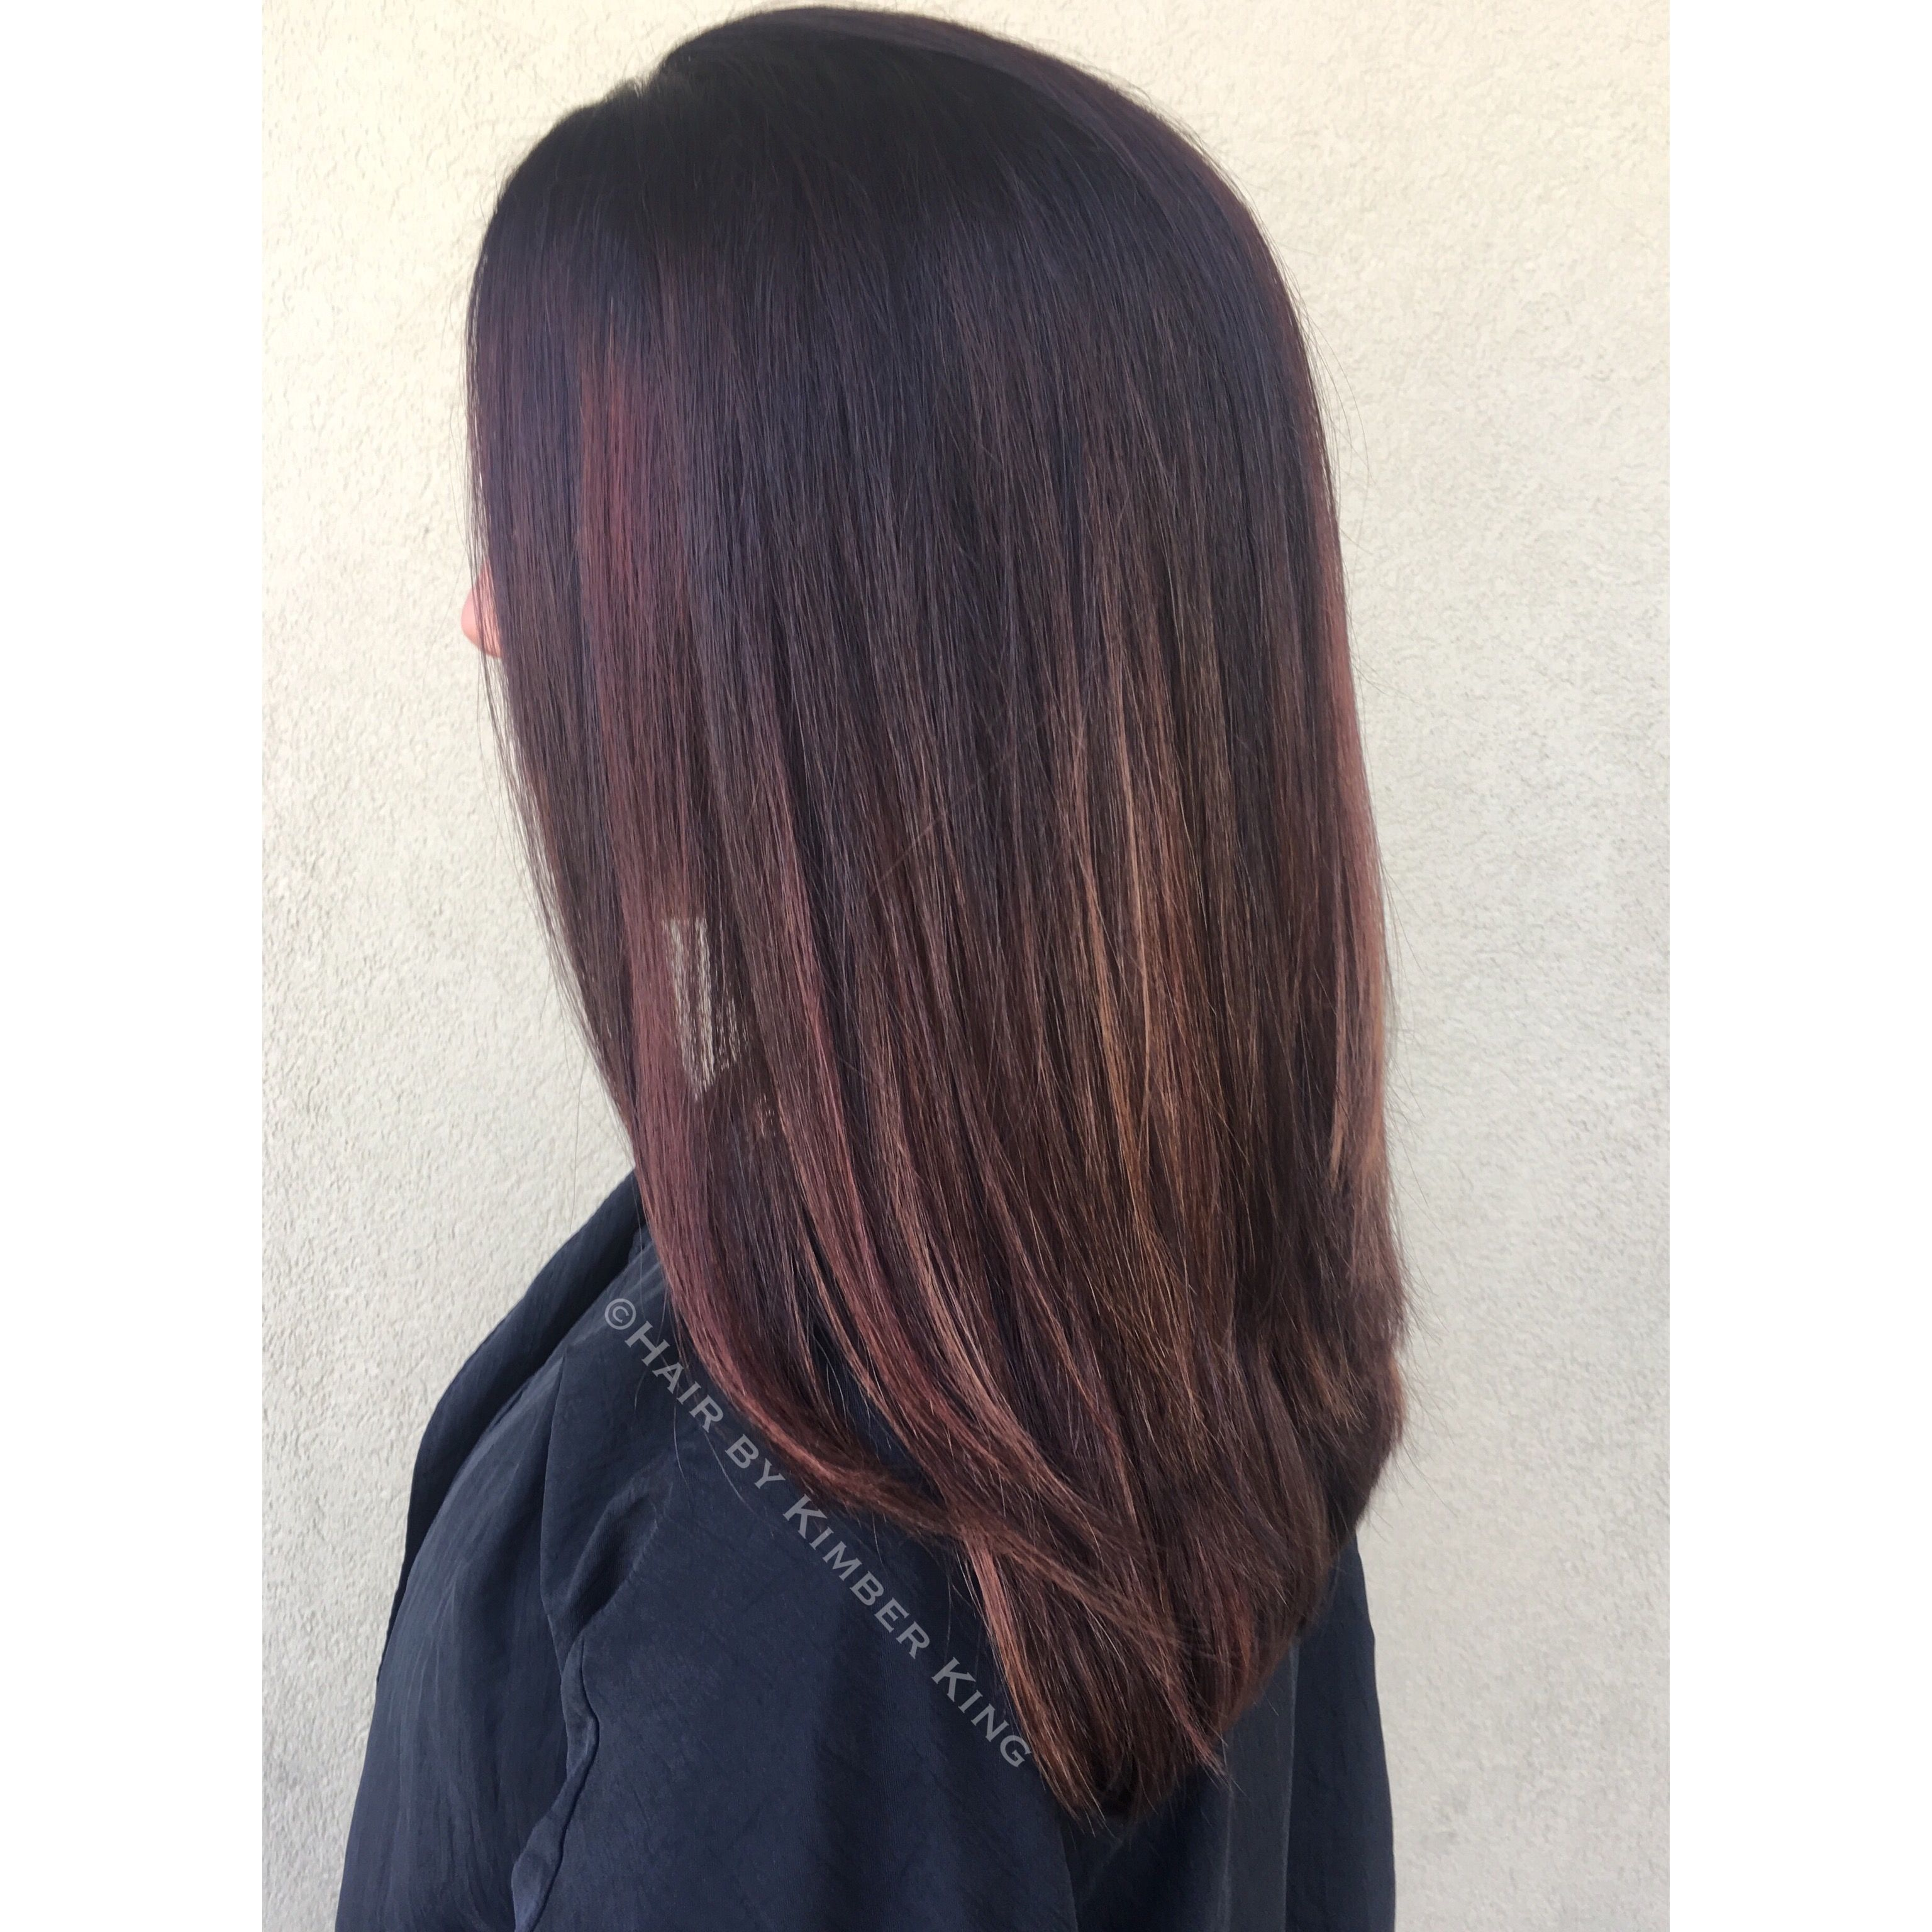 Rich Browns Coppers And Red Toned Balayage Highlights On Straight Hair Balayage Highlights Balayage Hair Copper Balayage Hair Purple